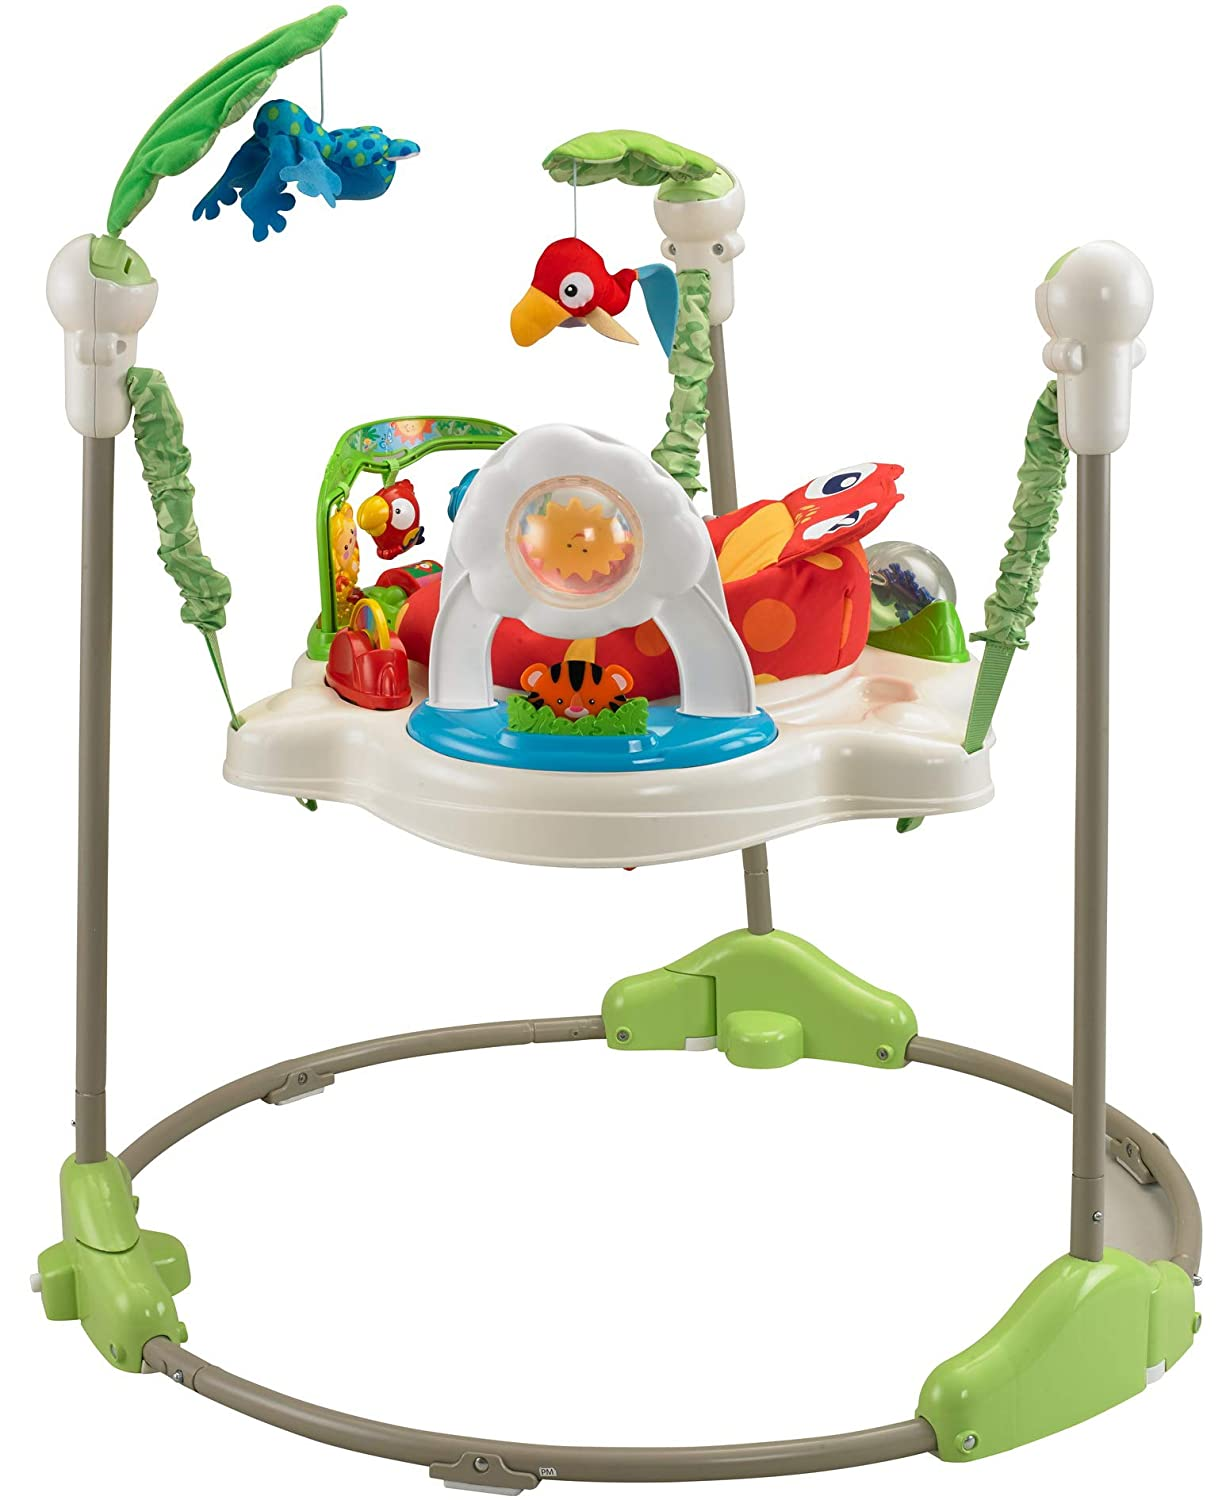 Fisher-Price Rainforest Jumperoo – Our Top Pick